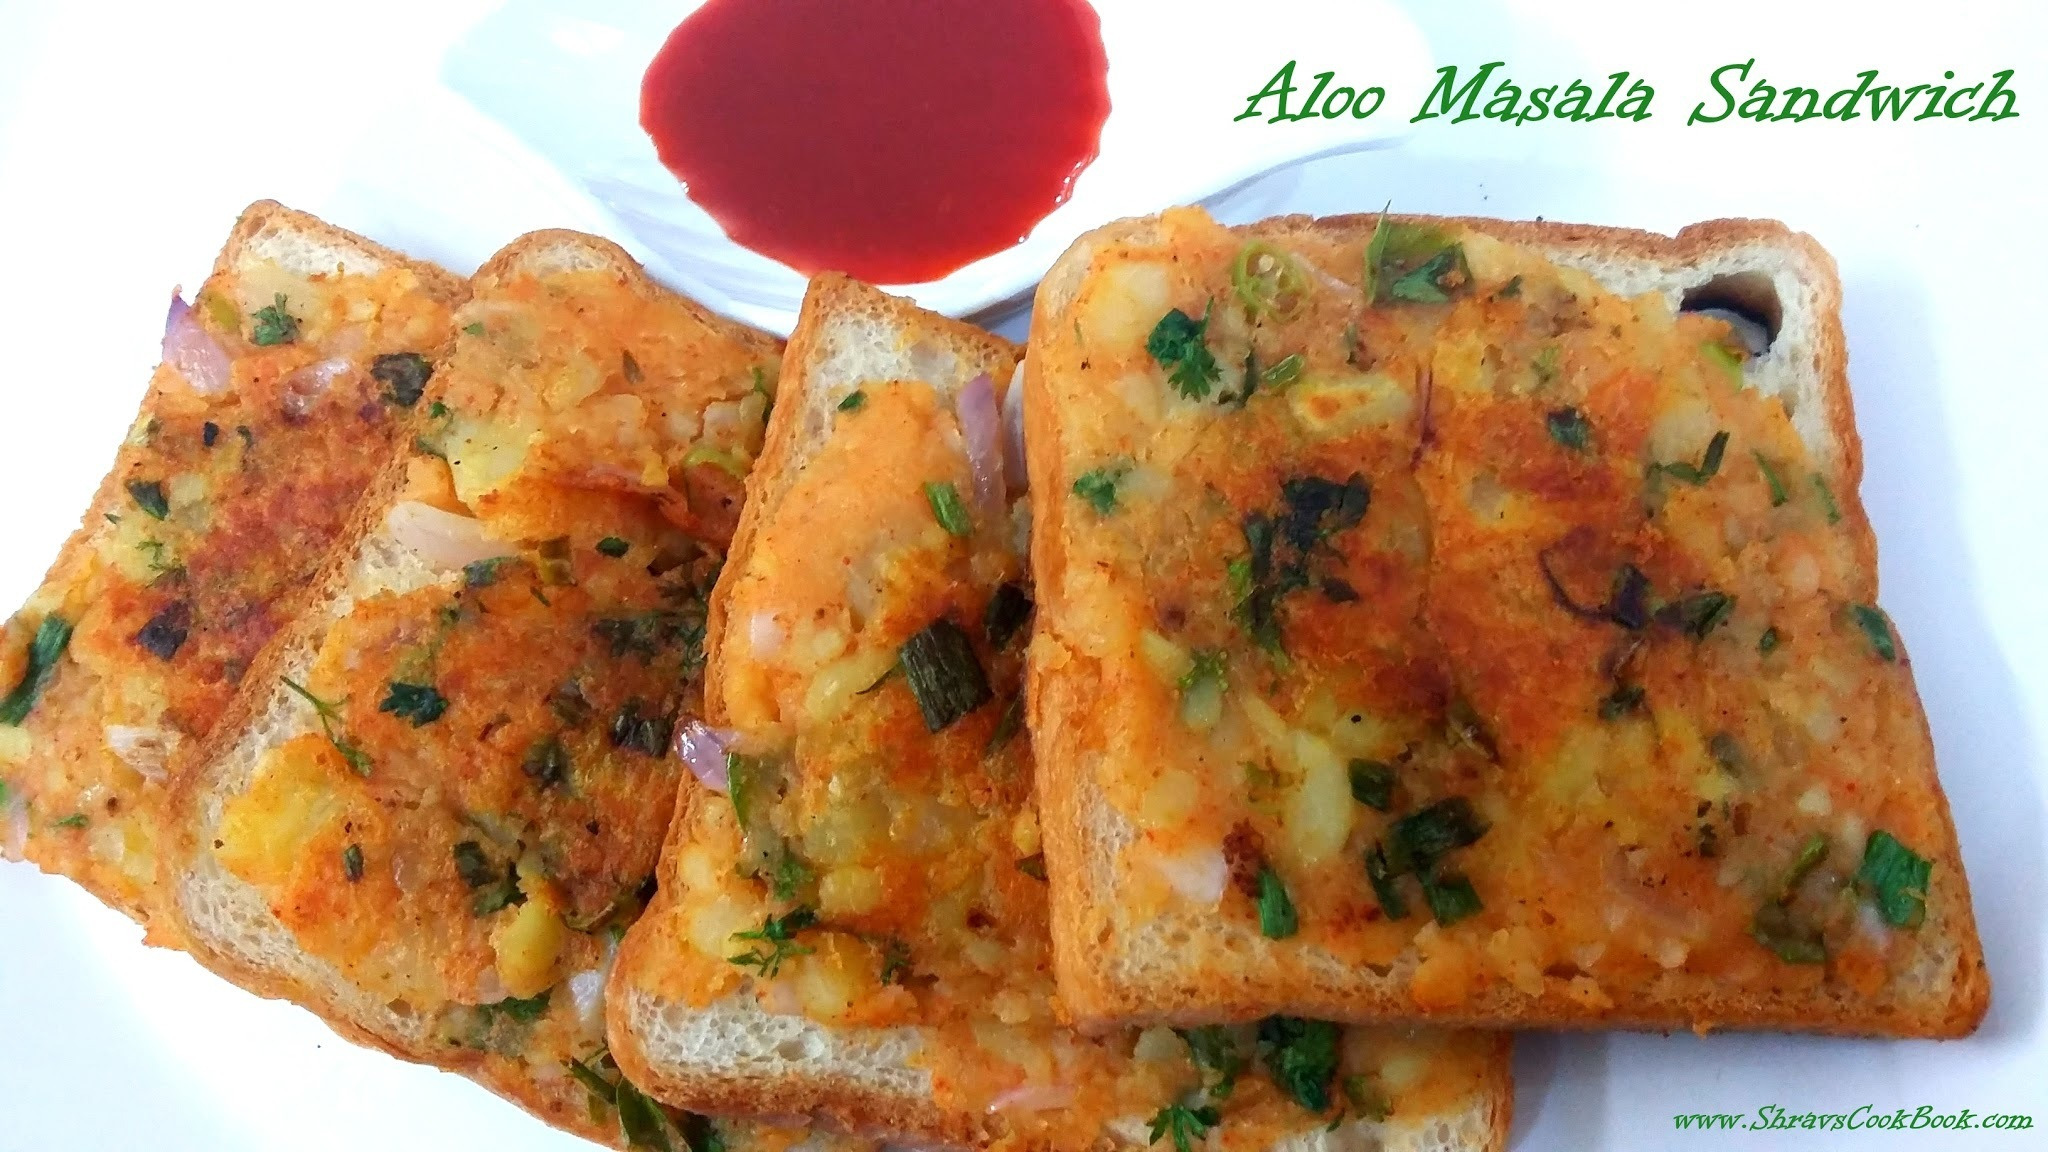 aloo masala sandwich - how to make aloo sandwich recipe or mashed potato sandwich